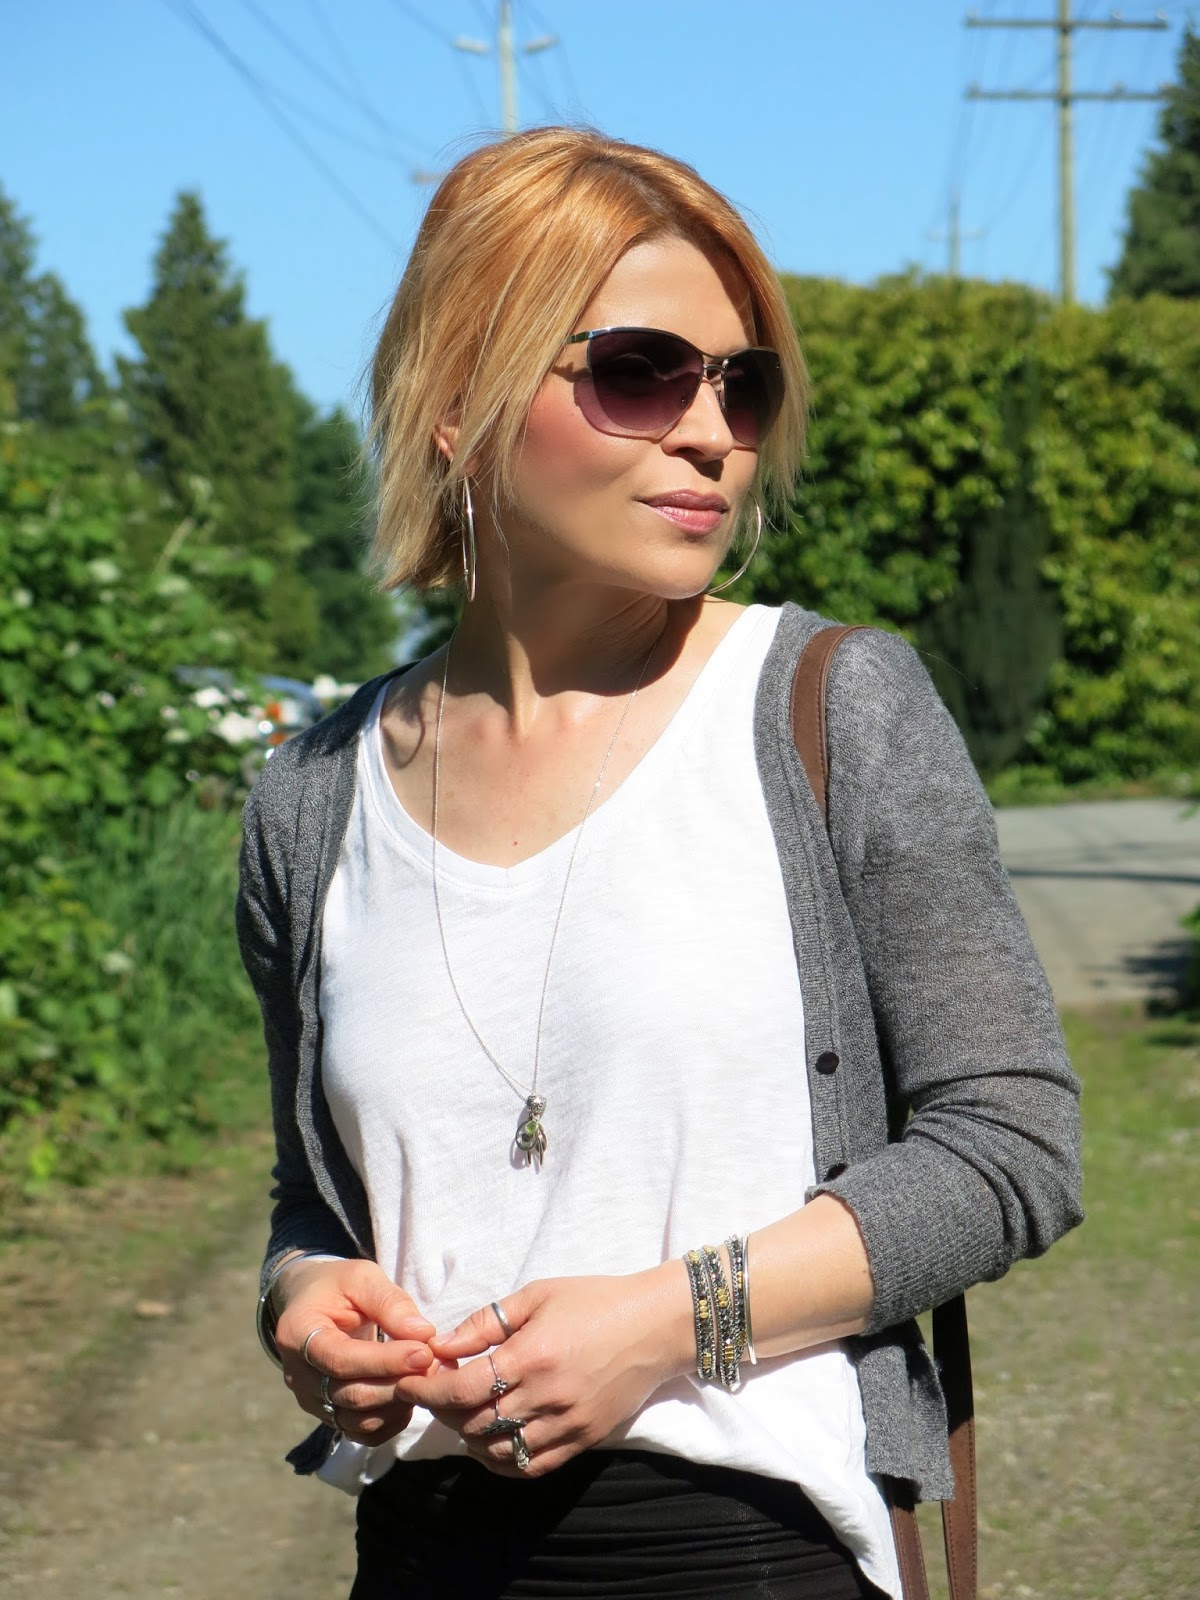 slouchy white tee, shrunken cardigan, sunglasses